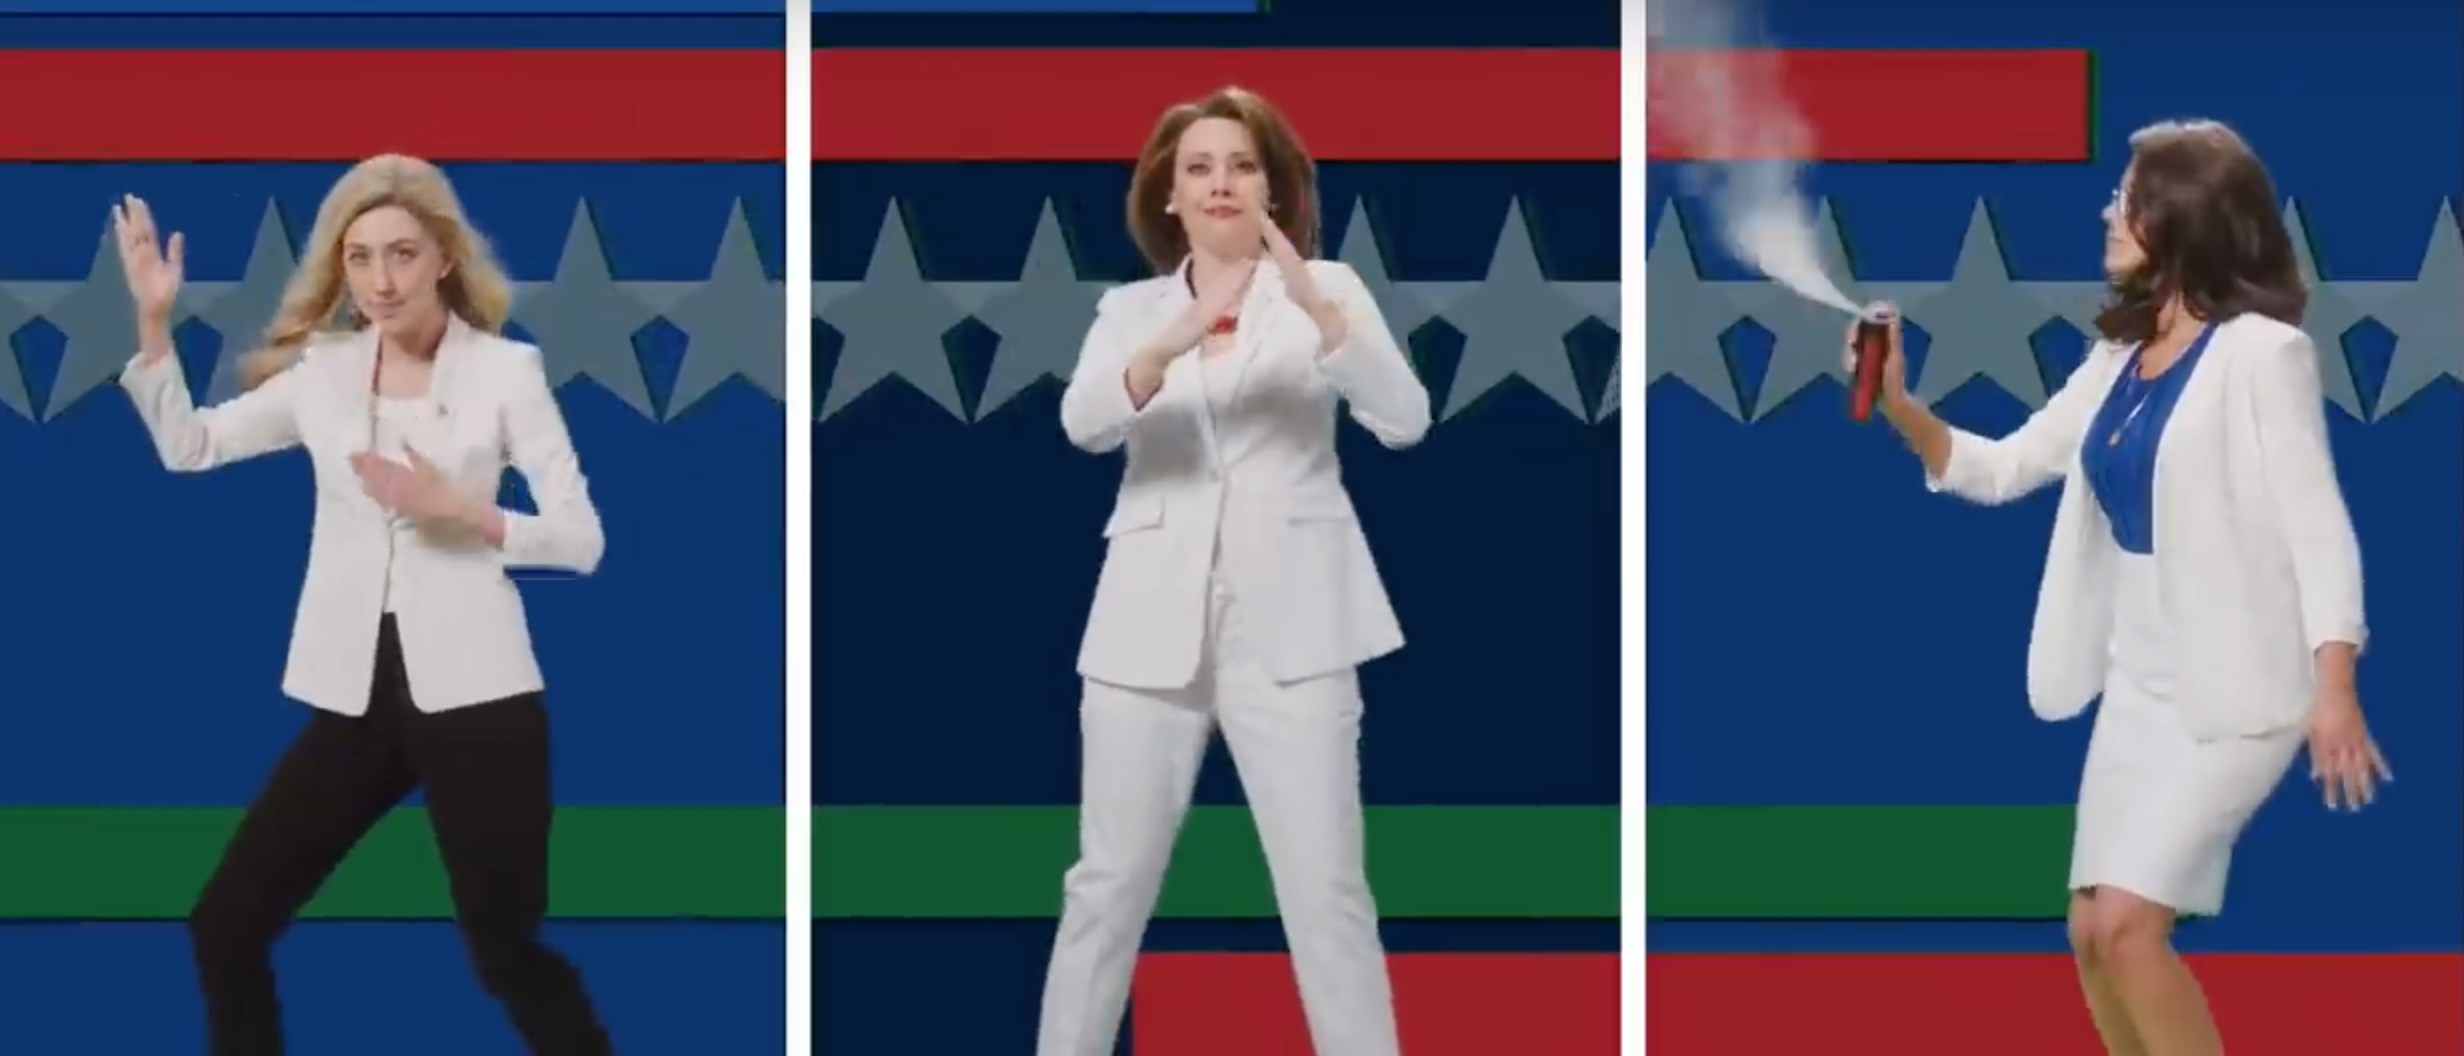 'SNL' Sketch Features The 'Women Of Congress,' Leaves Out Every Single Republican